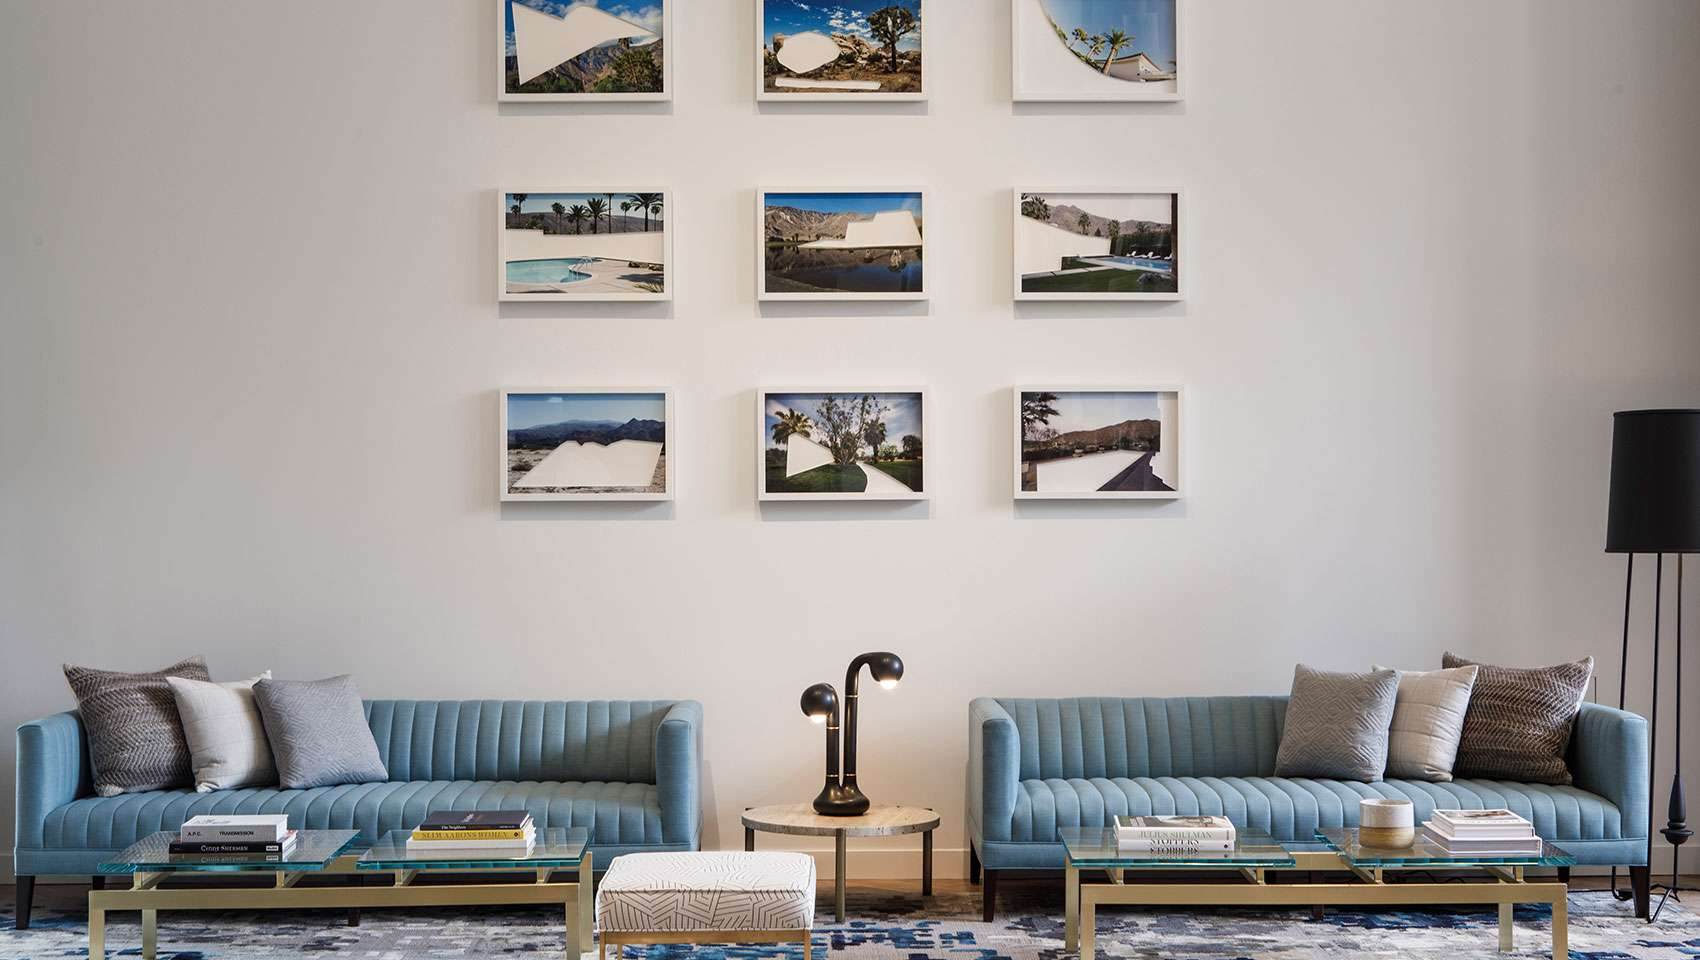 Two blue sofas in a hotel lobby with 9 photographs hanging on the wall above the sofas